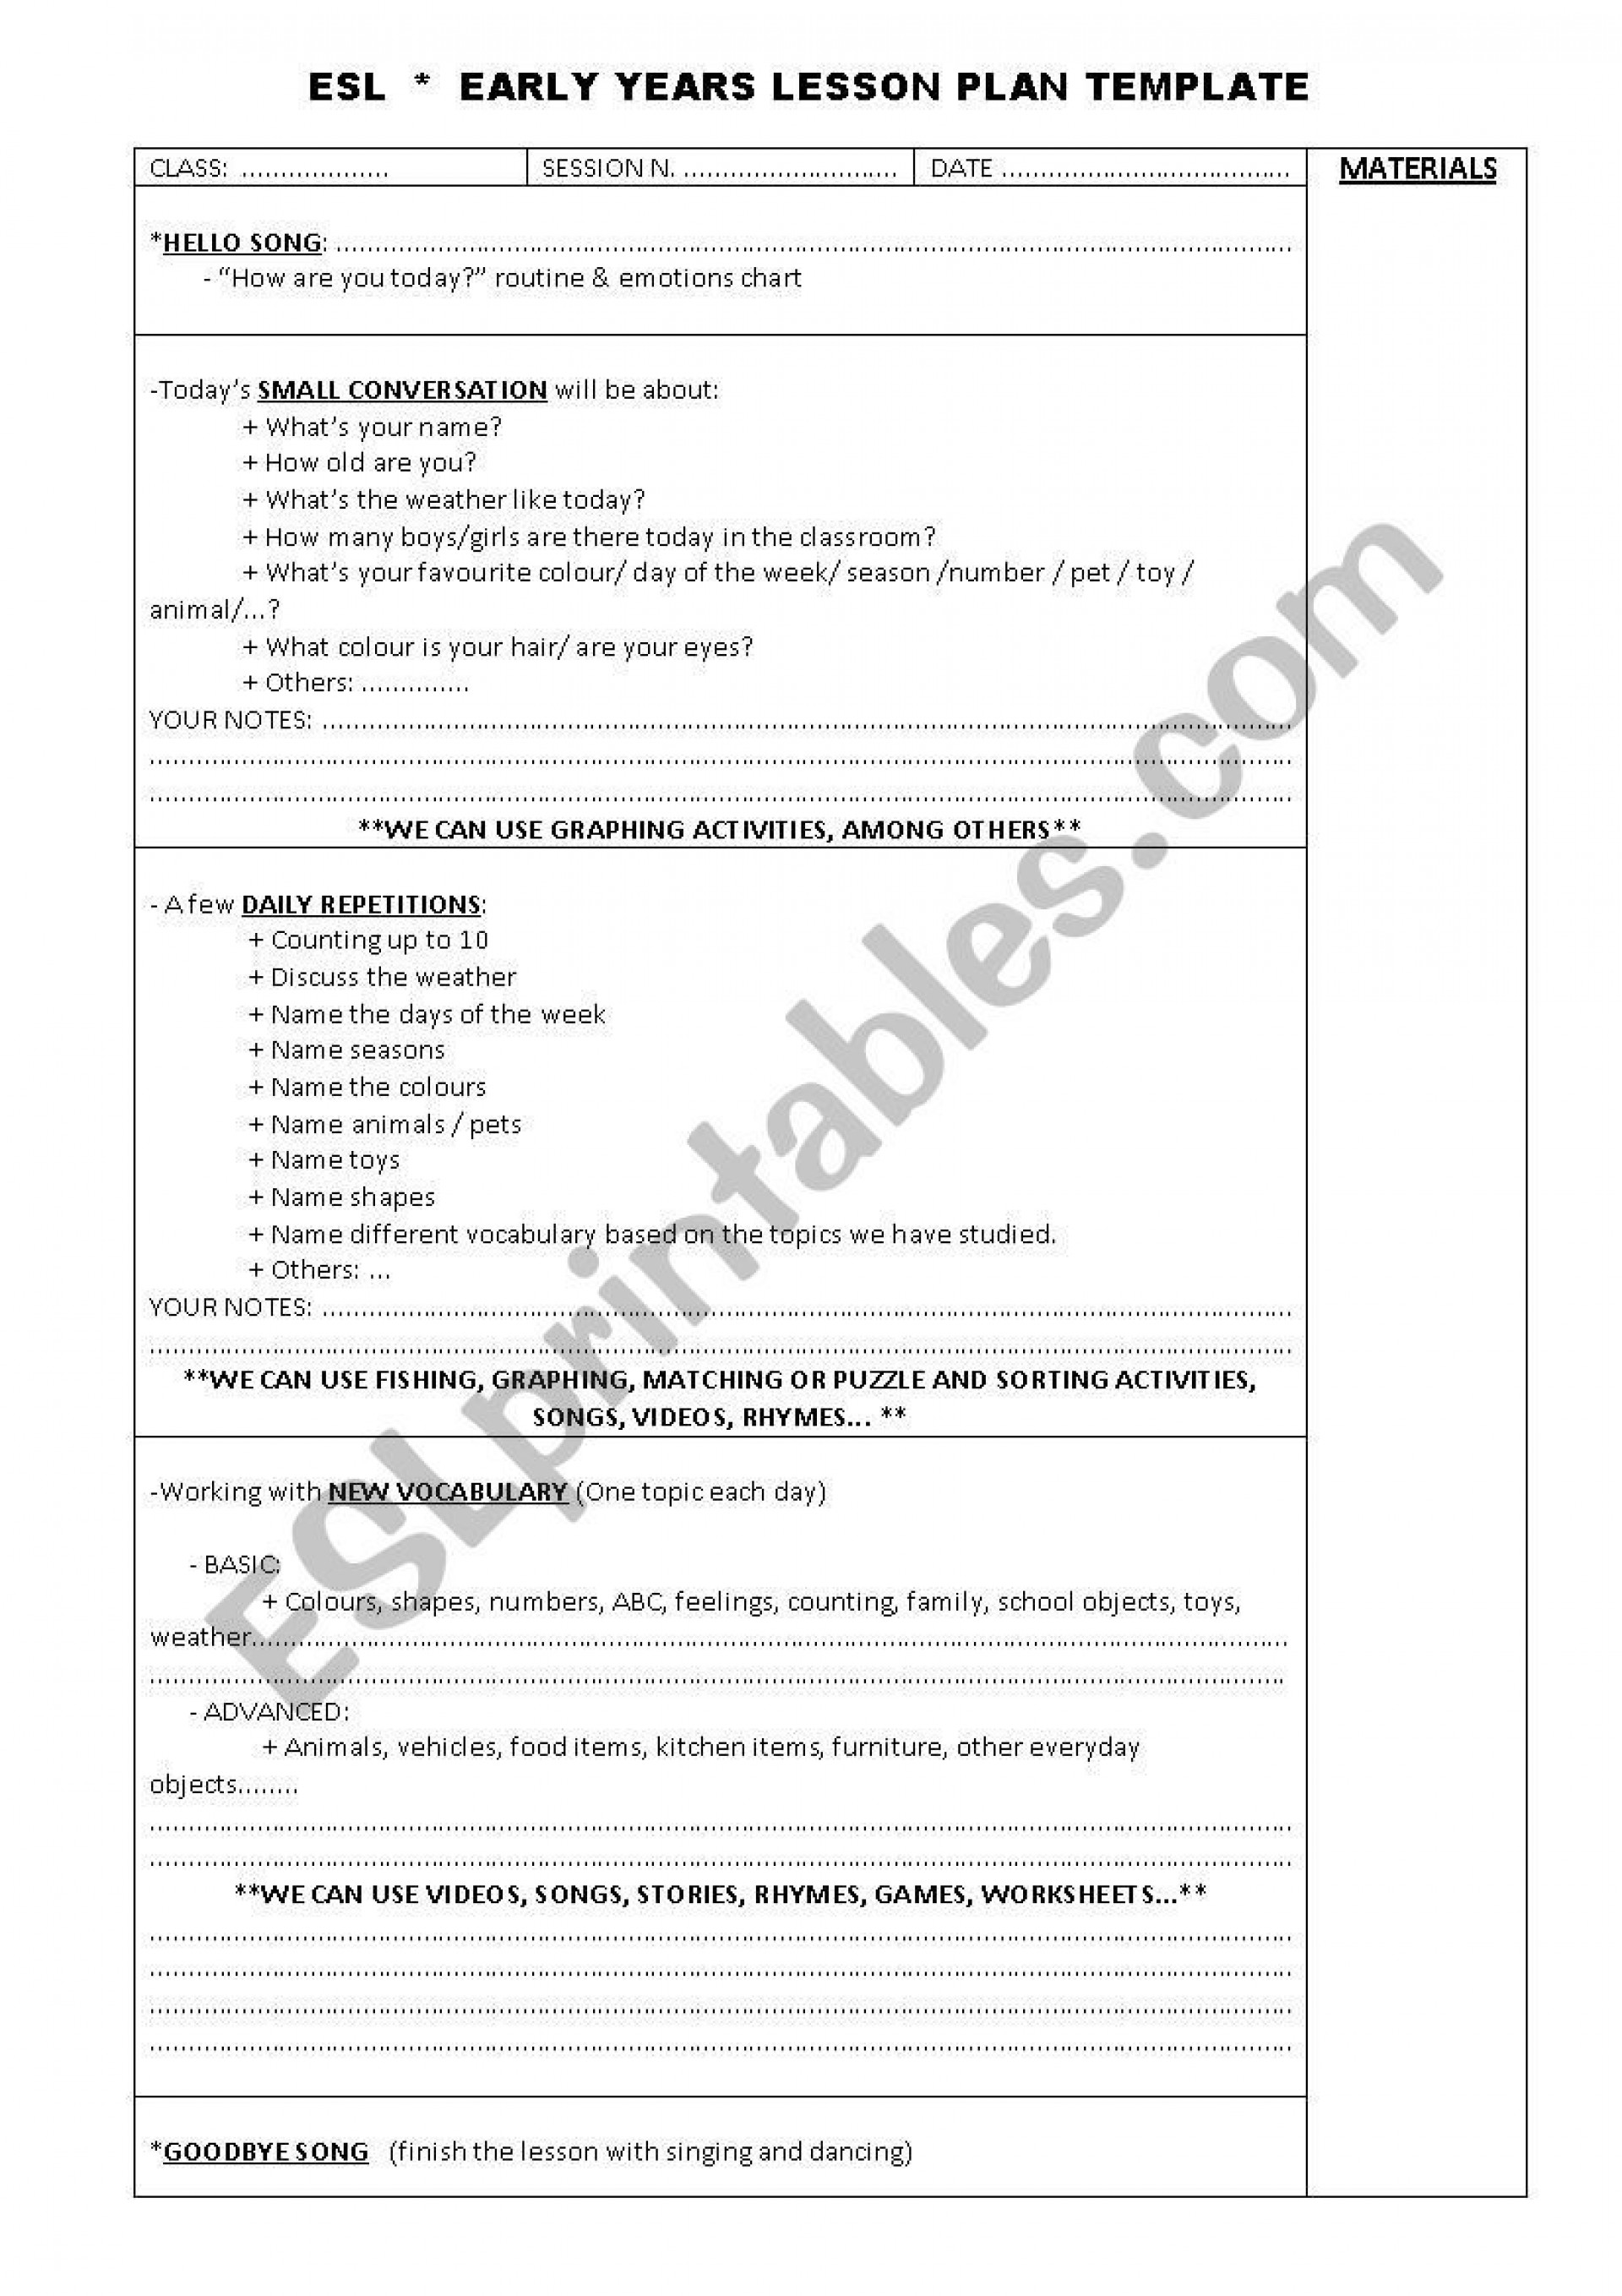 001 Wonderful One Day Lesson Plan Template Inspiration  Example Format1920